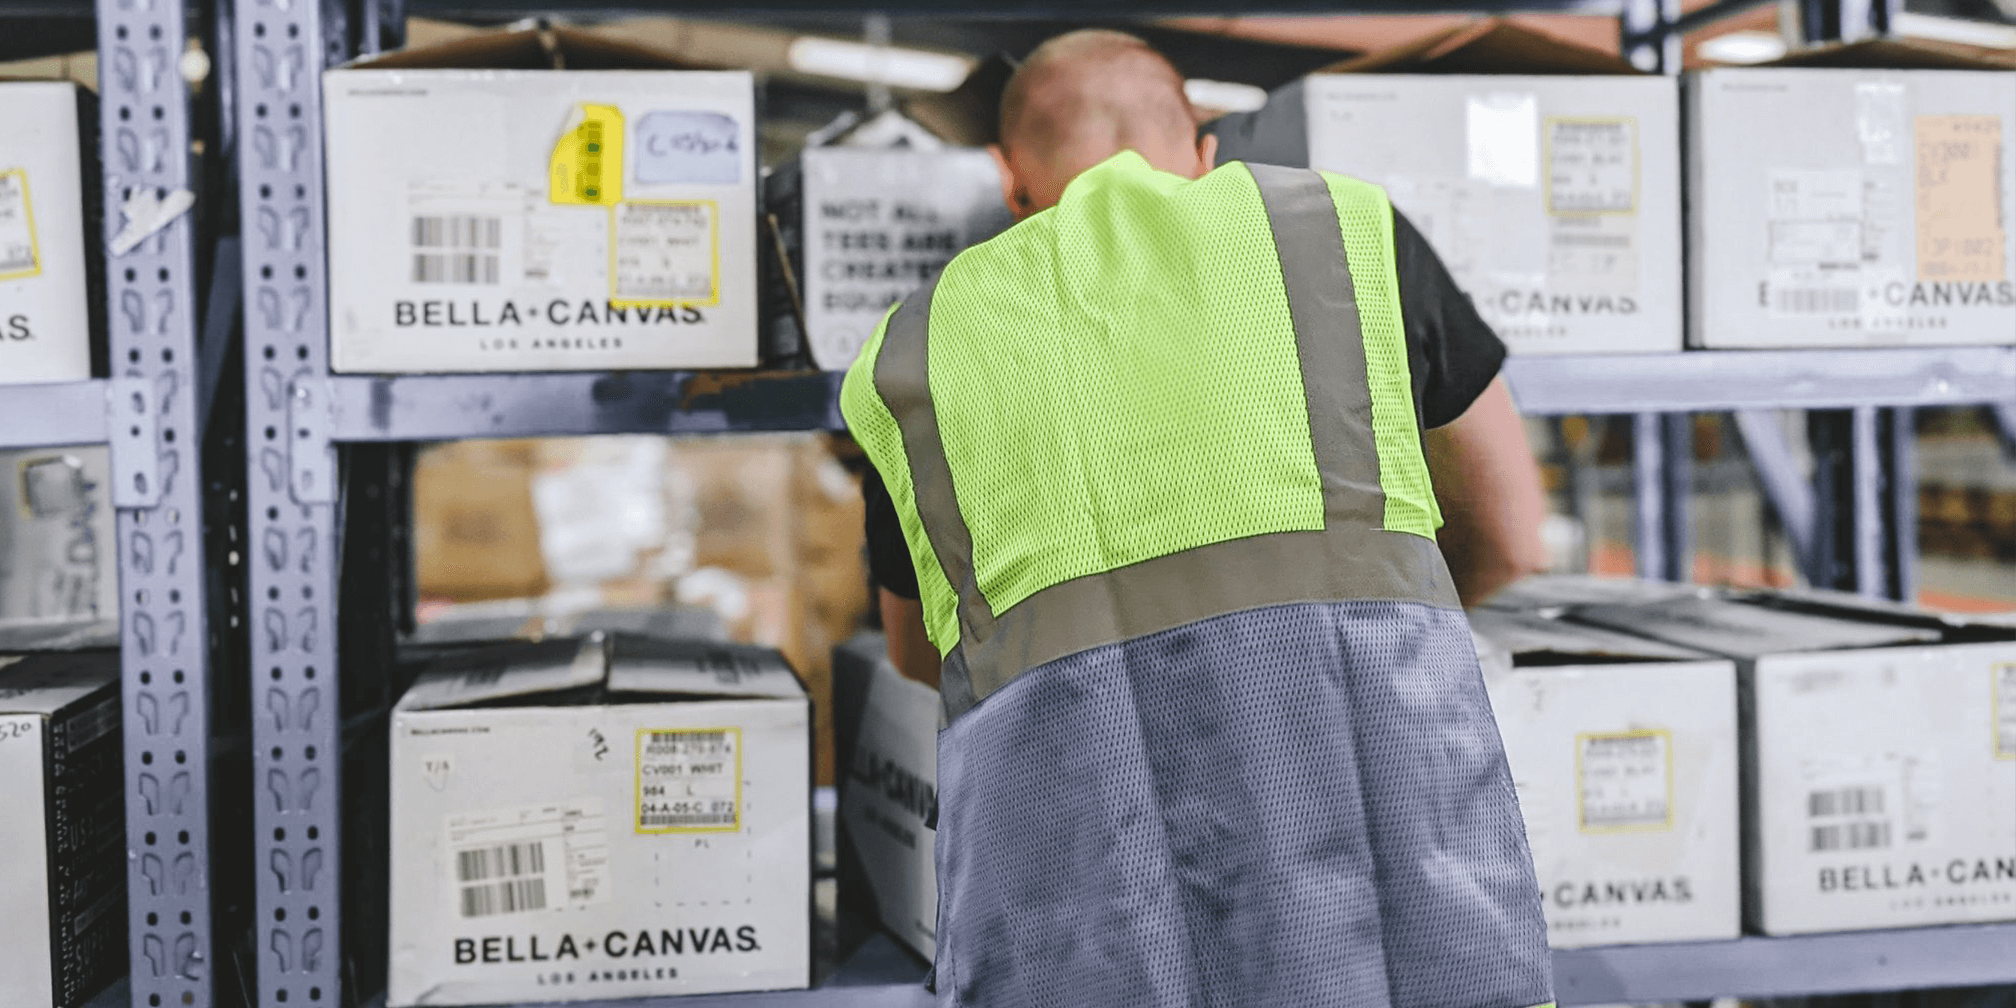 inkthreadable's warehousing capacity has expanded greatly